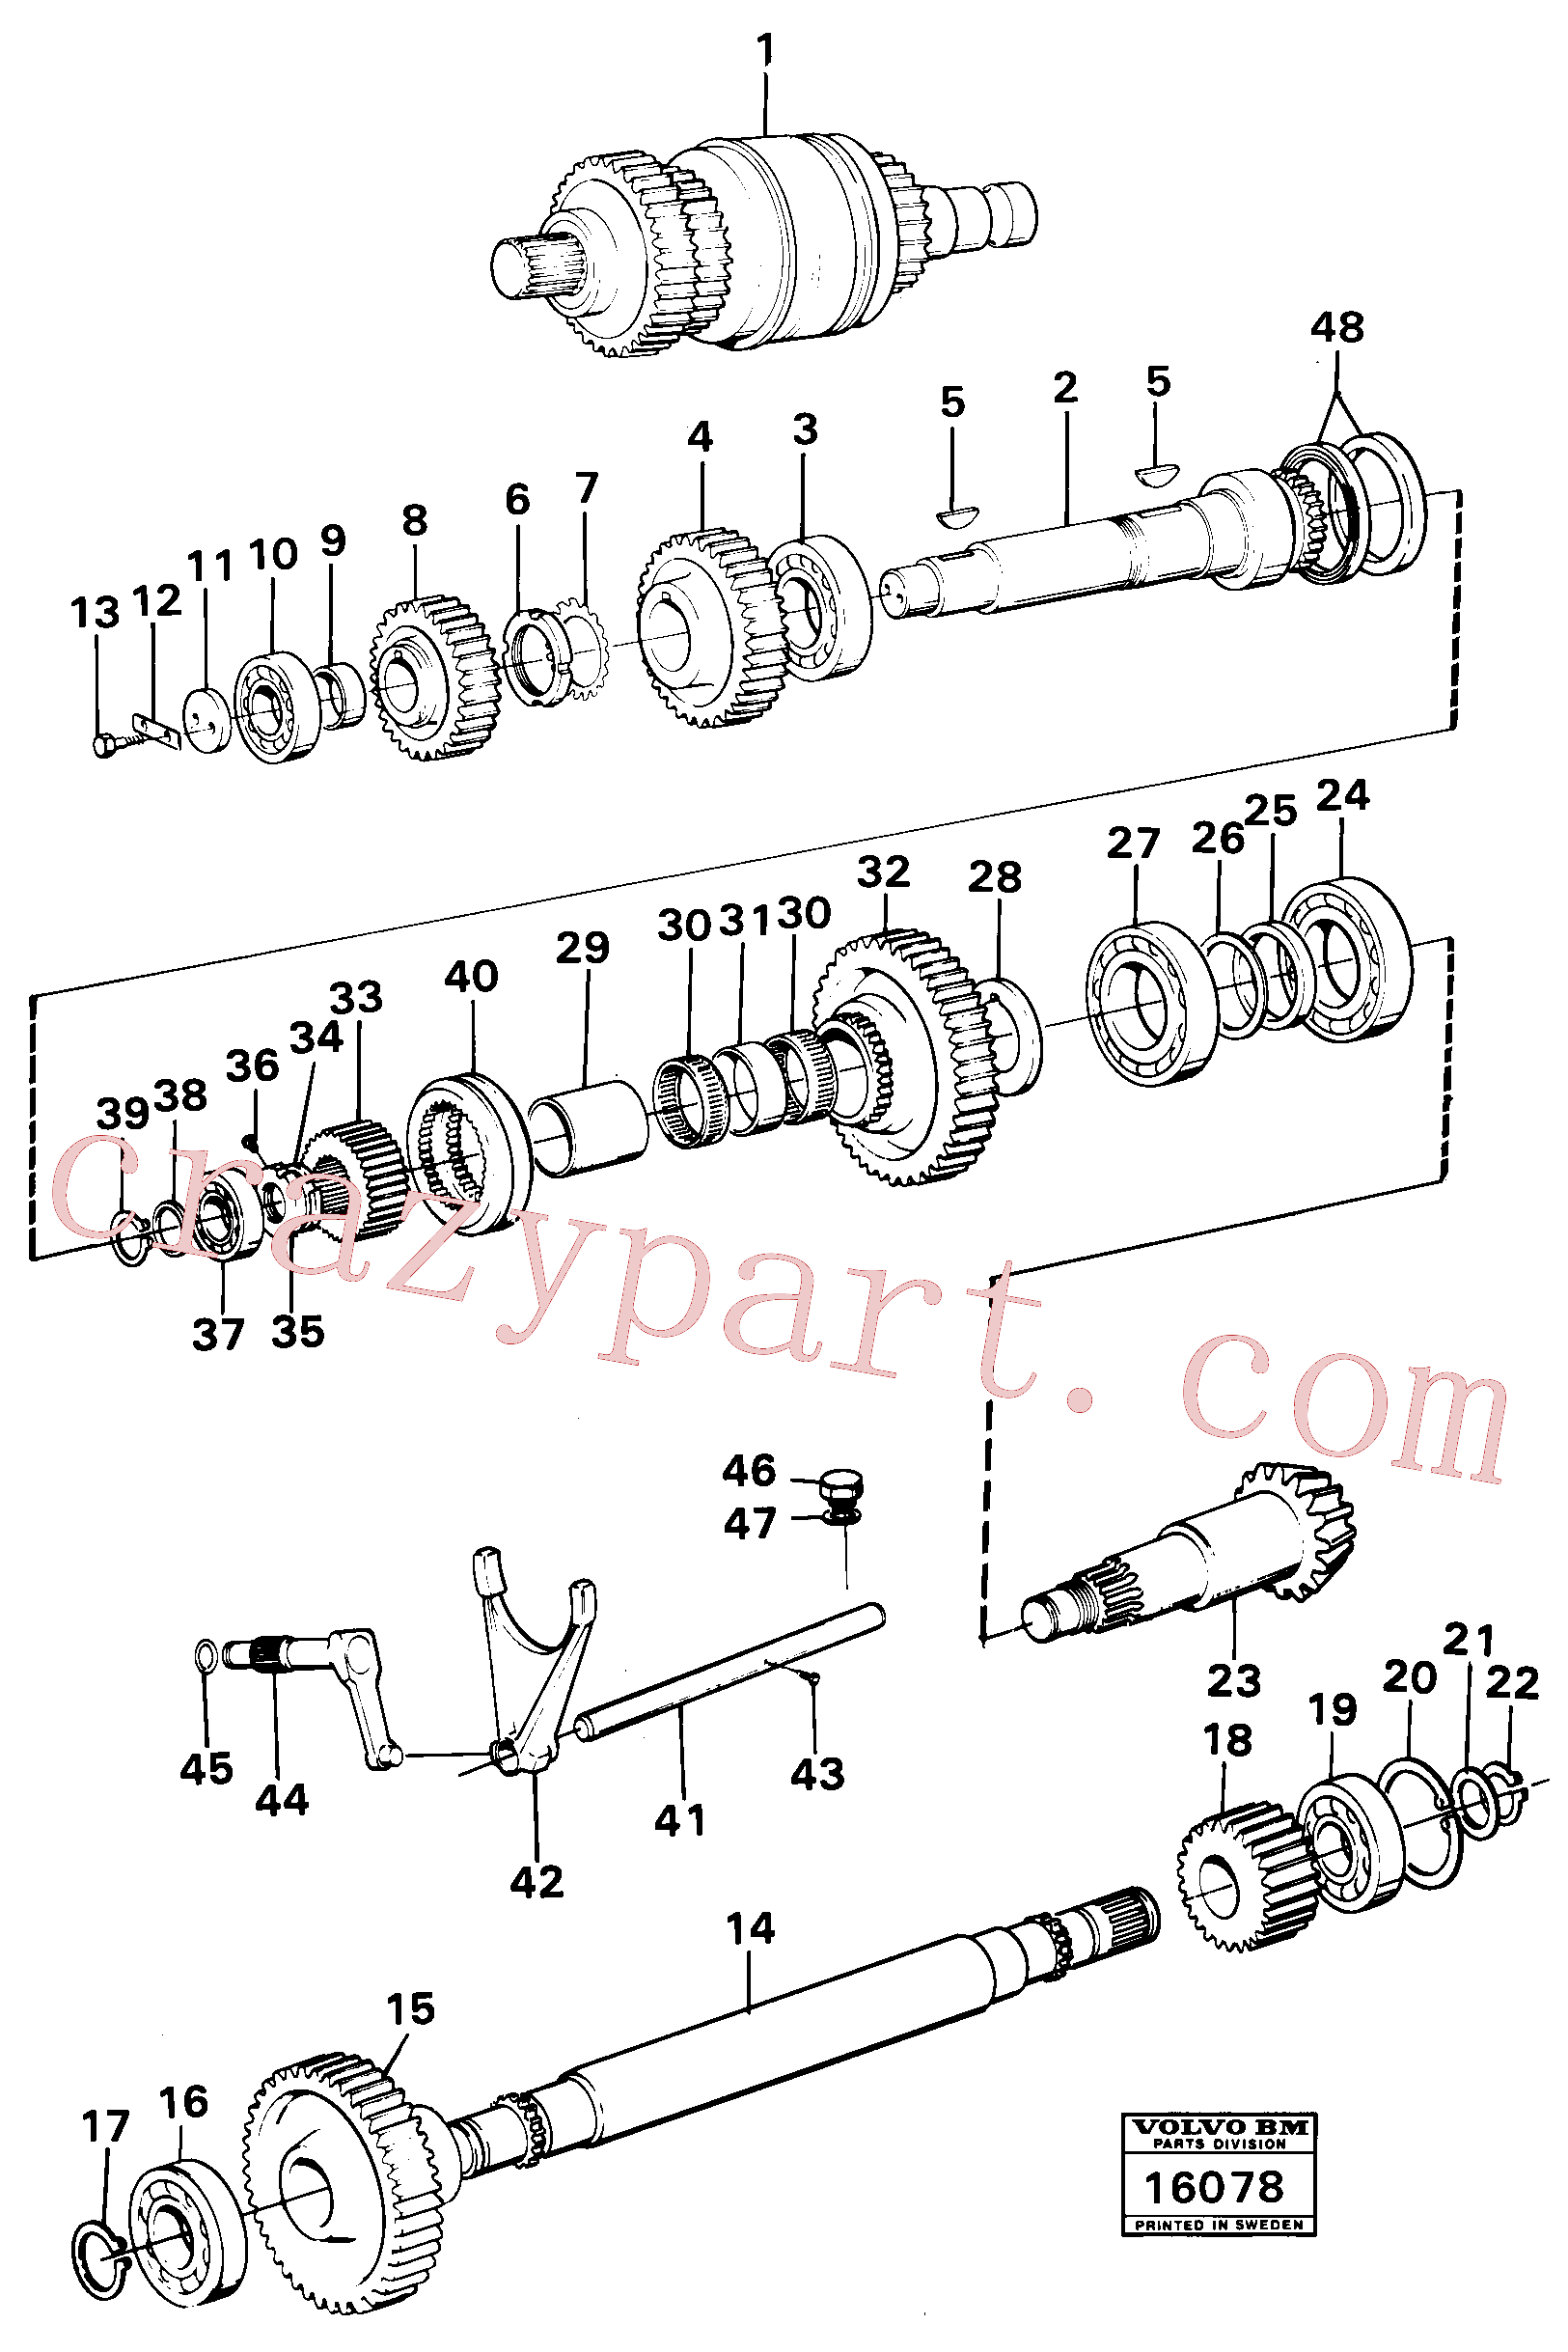 VOE914472 for Volvo Clutches,gears and shafts(16078 assembly)